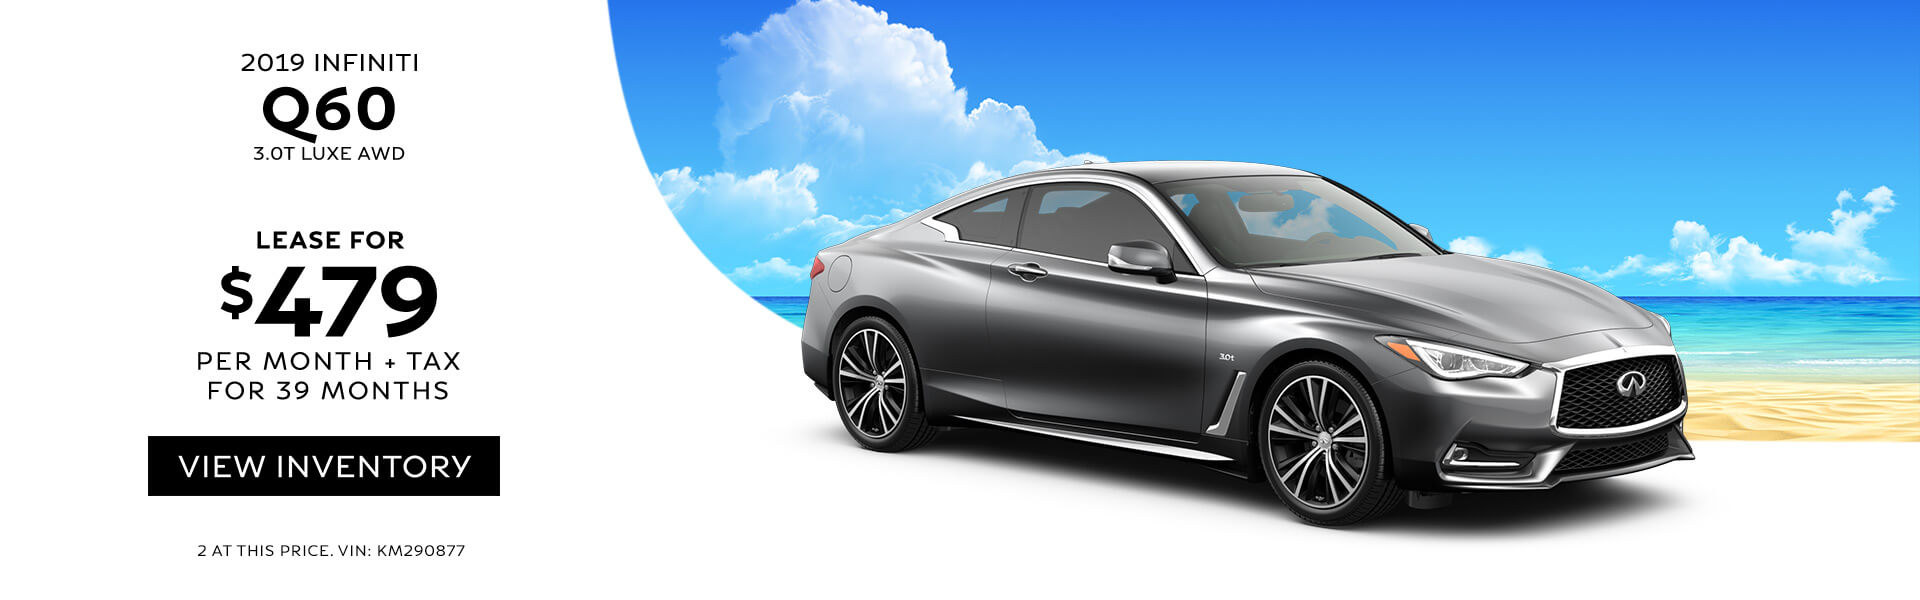 Q60 Lease for 479